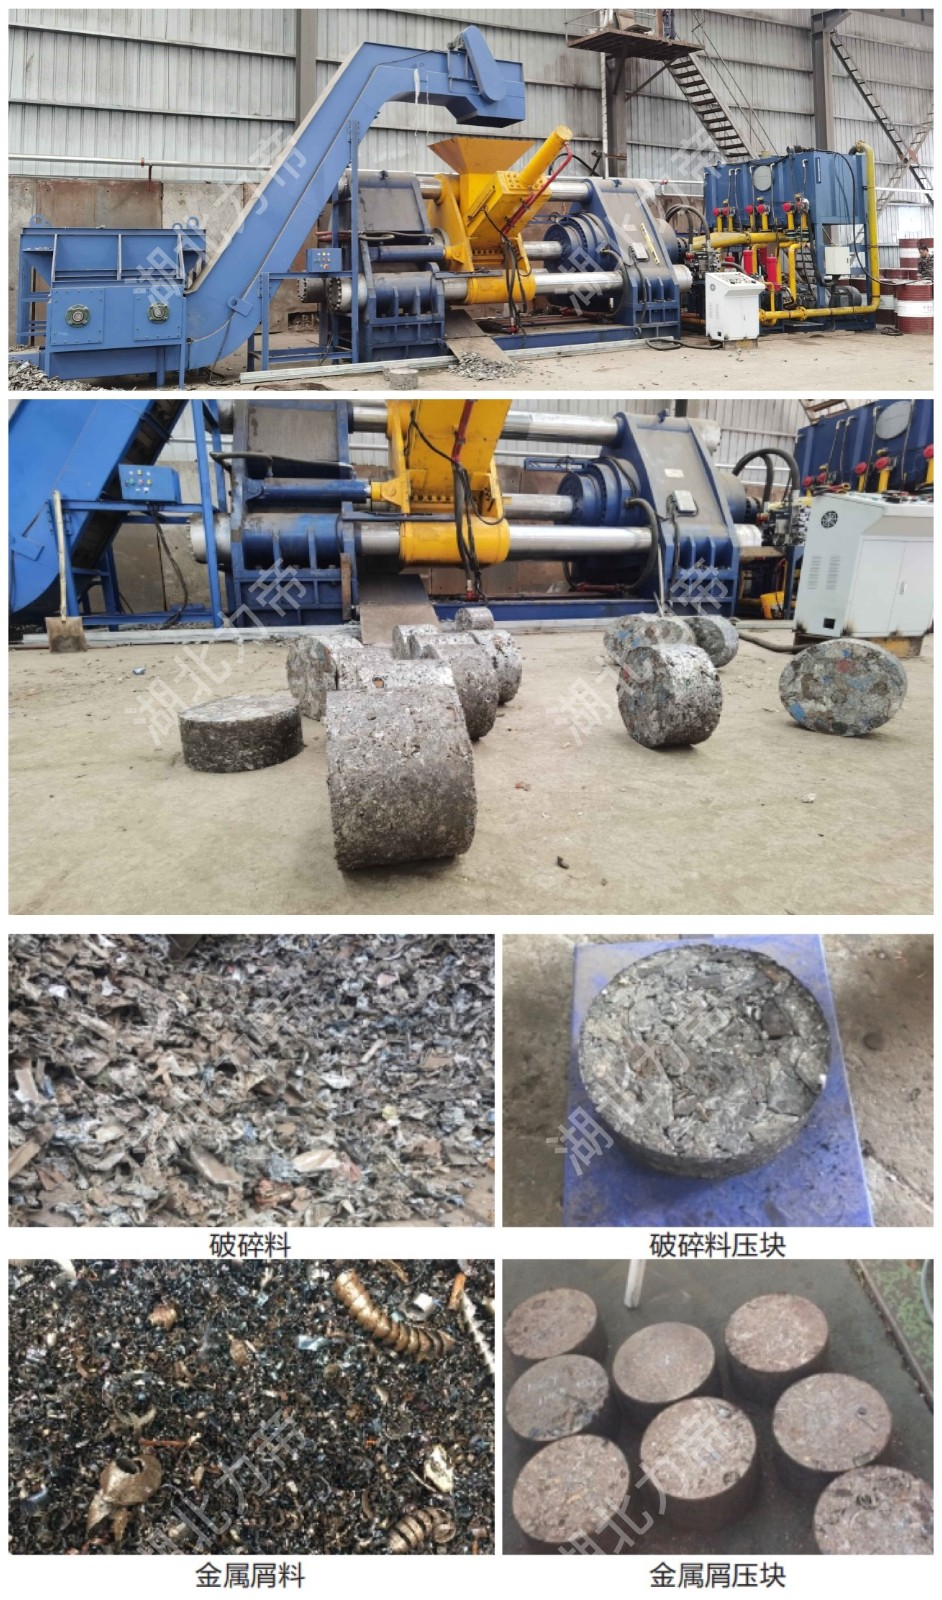 Iron and steel scrap processing